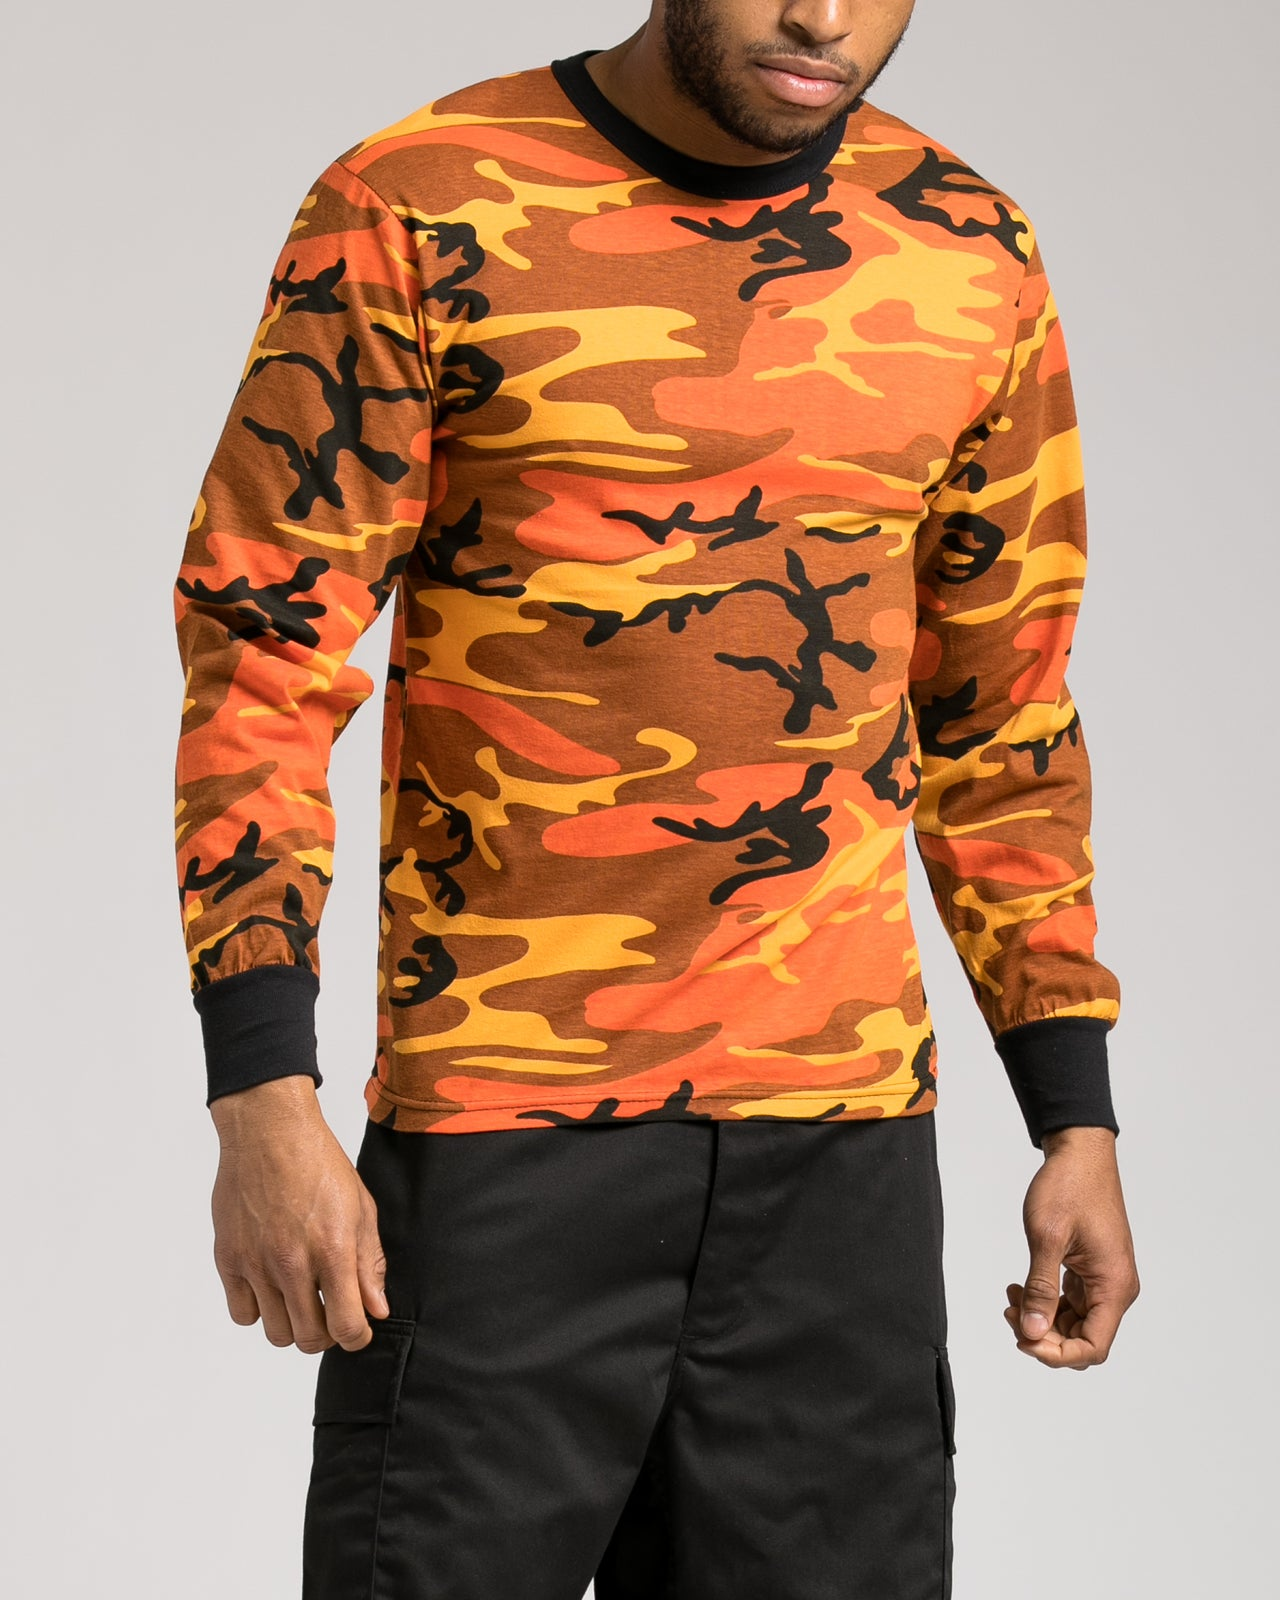 Color Camo Long Sleeve Tee - Color: Savage Orange Camo | Orange